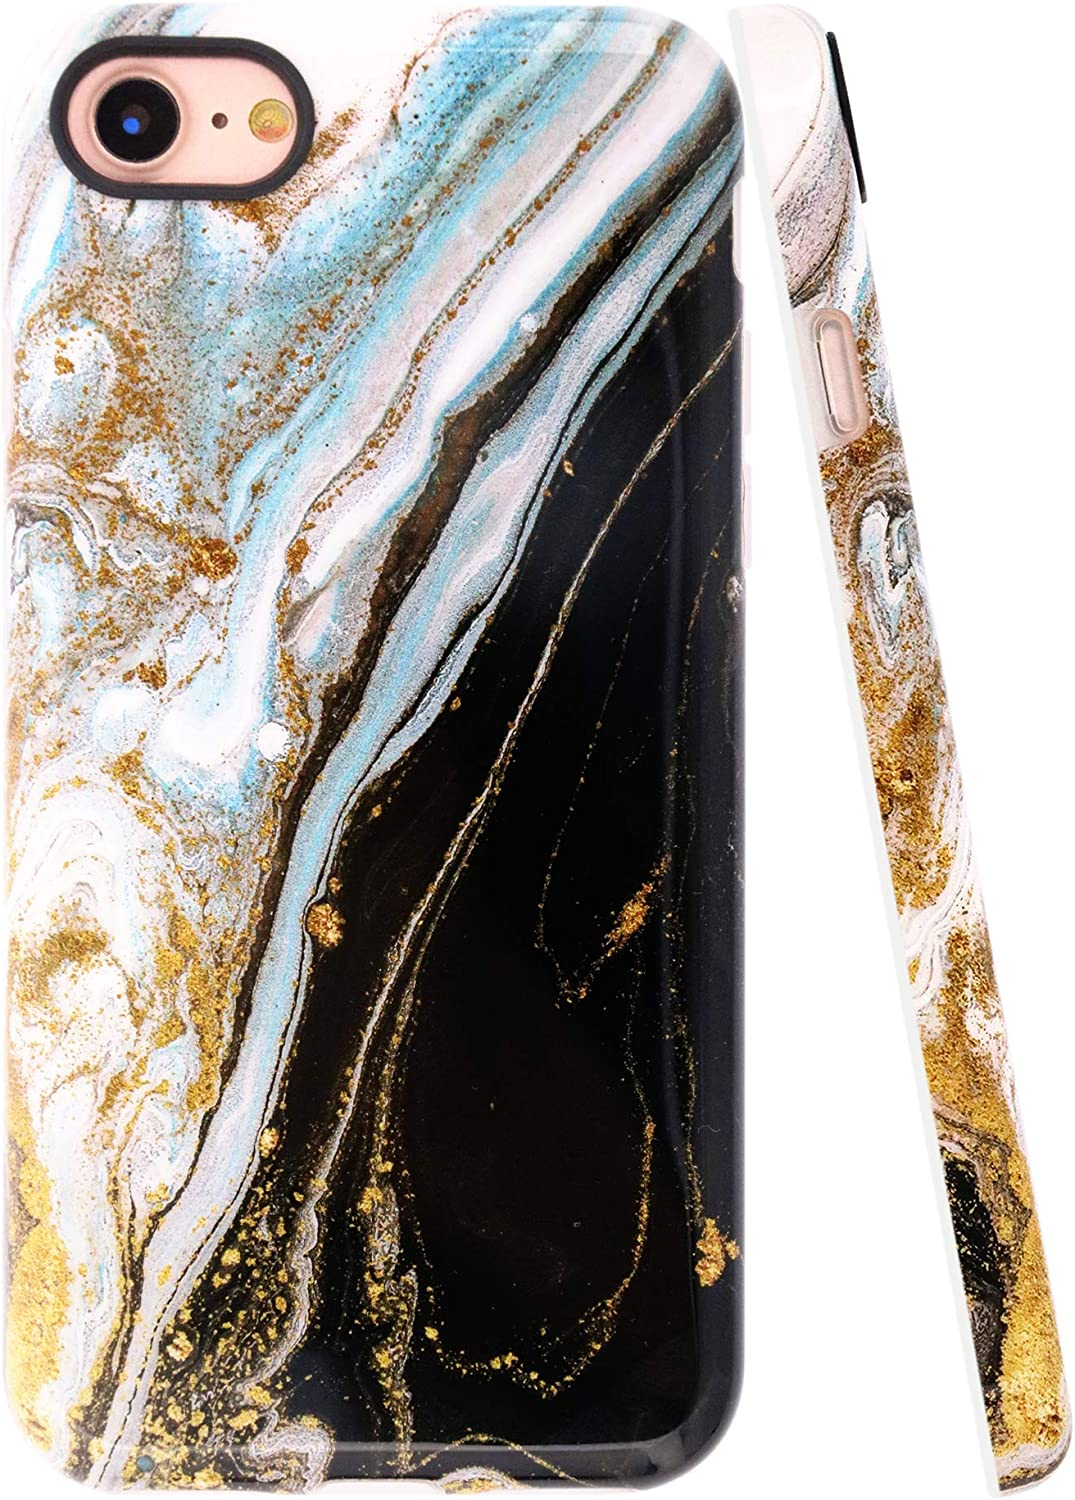 A-Focus Compatible with New iPhone SE Case, iPhone 8 Case Marble, iPhone 7 Case, Smooth Marble Texture Series Rock Stone IMD Shock Proof Slim TPU Case for iPhone 7/8 / SE 4.7 inch Glossy Black Yellow